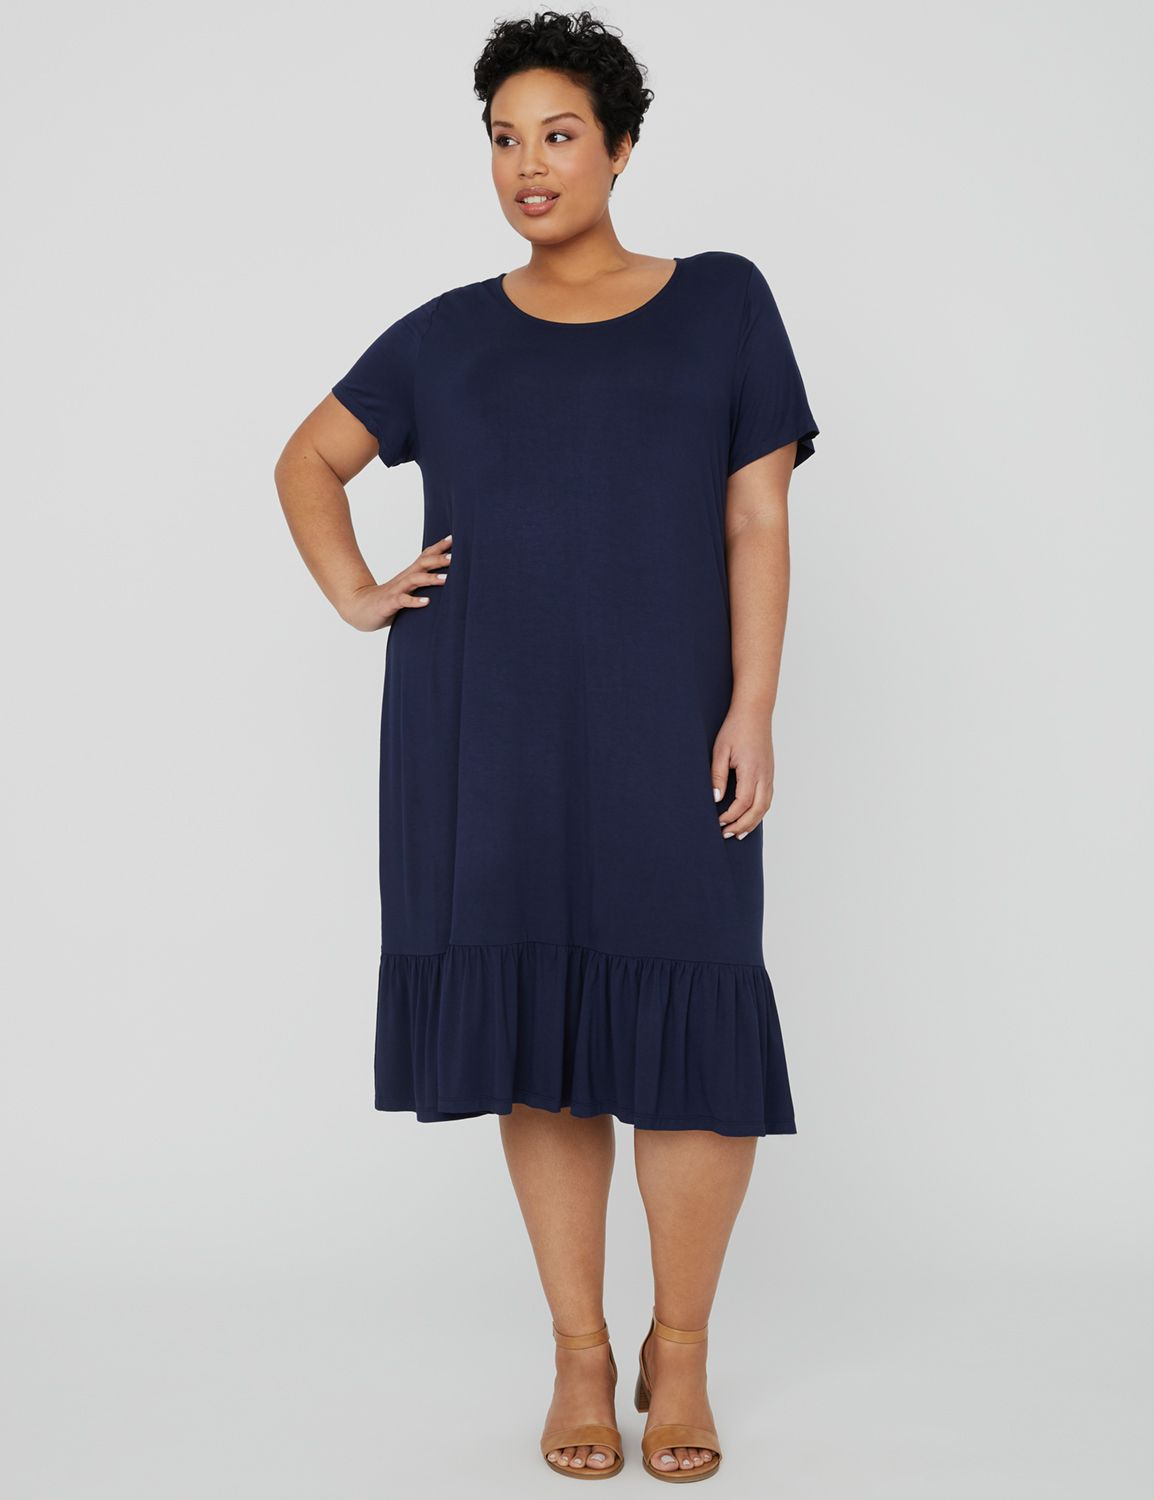 Exhale T-Shirt A-Line Dress 1090955 T-shirt Dress with Flounce MP-300102394